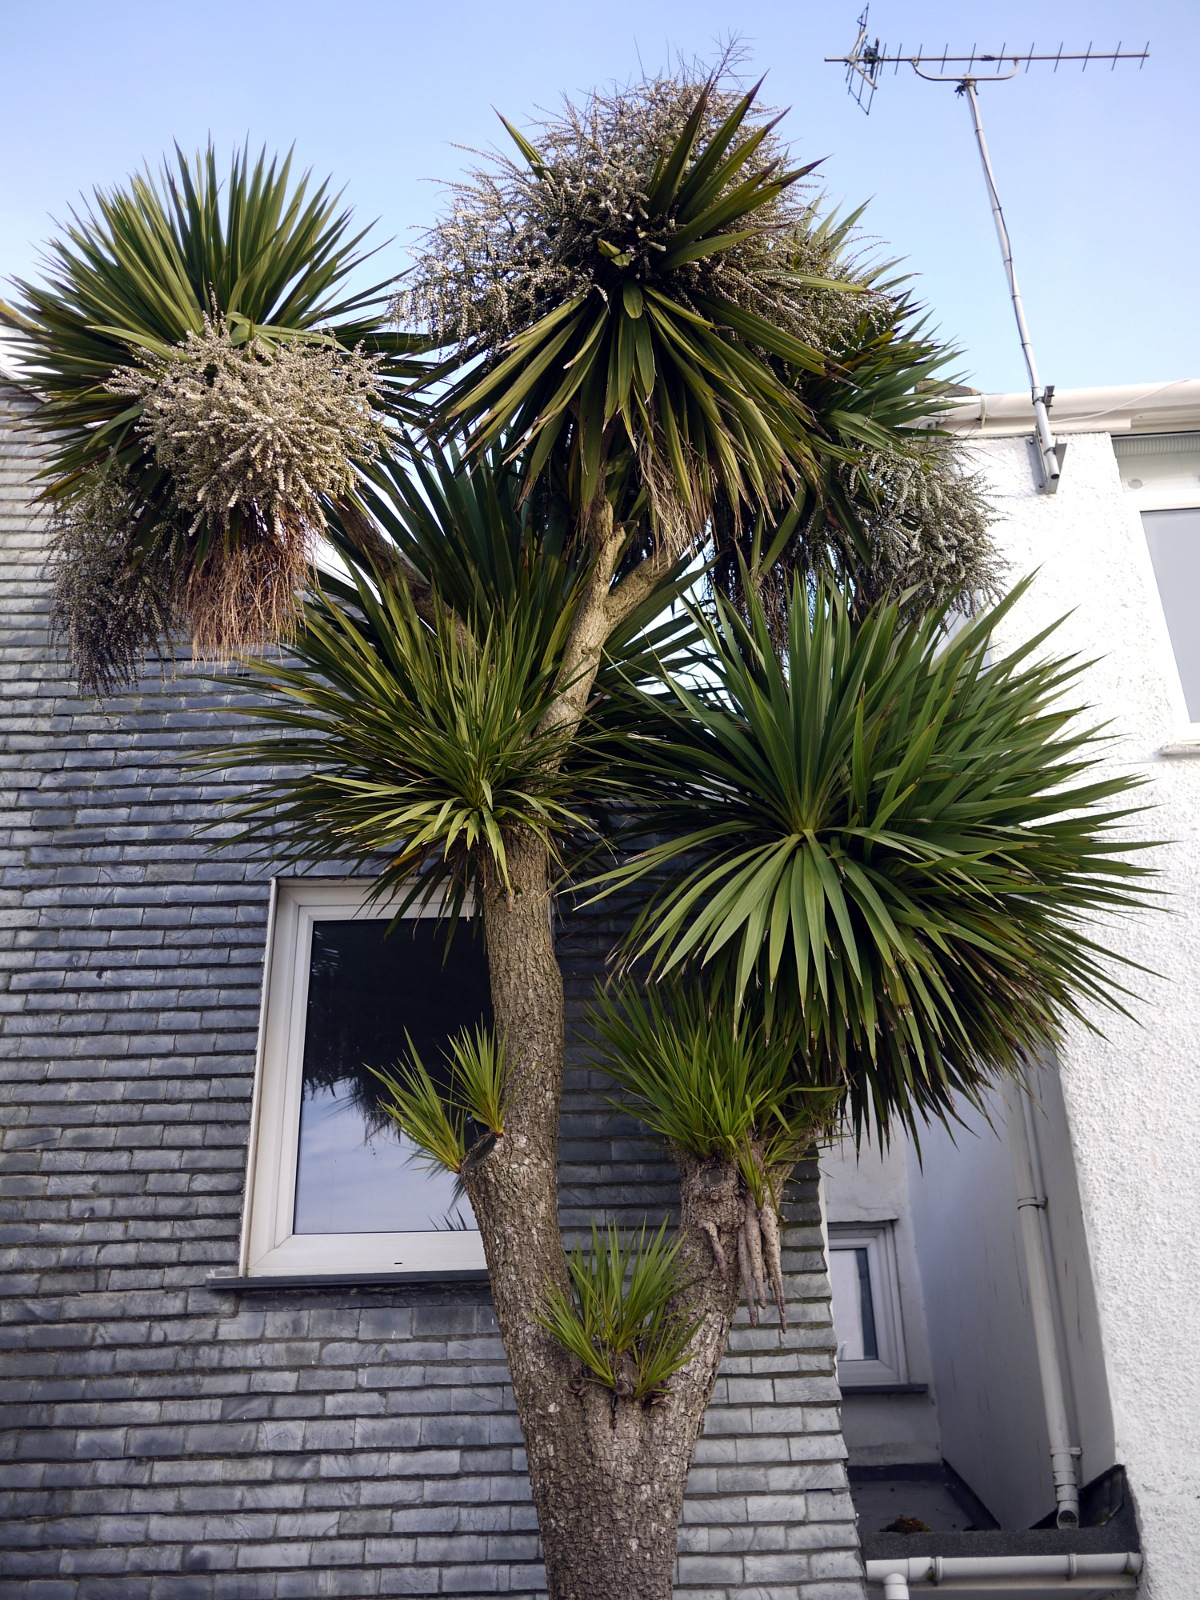 The Cabbage tree imagined palm of the English seaside The